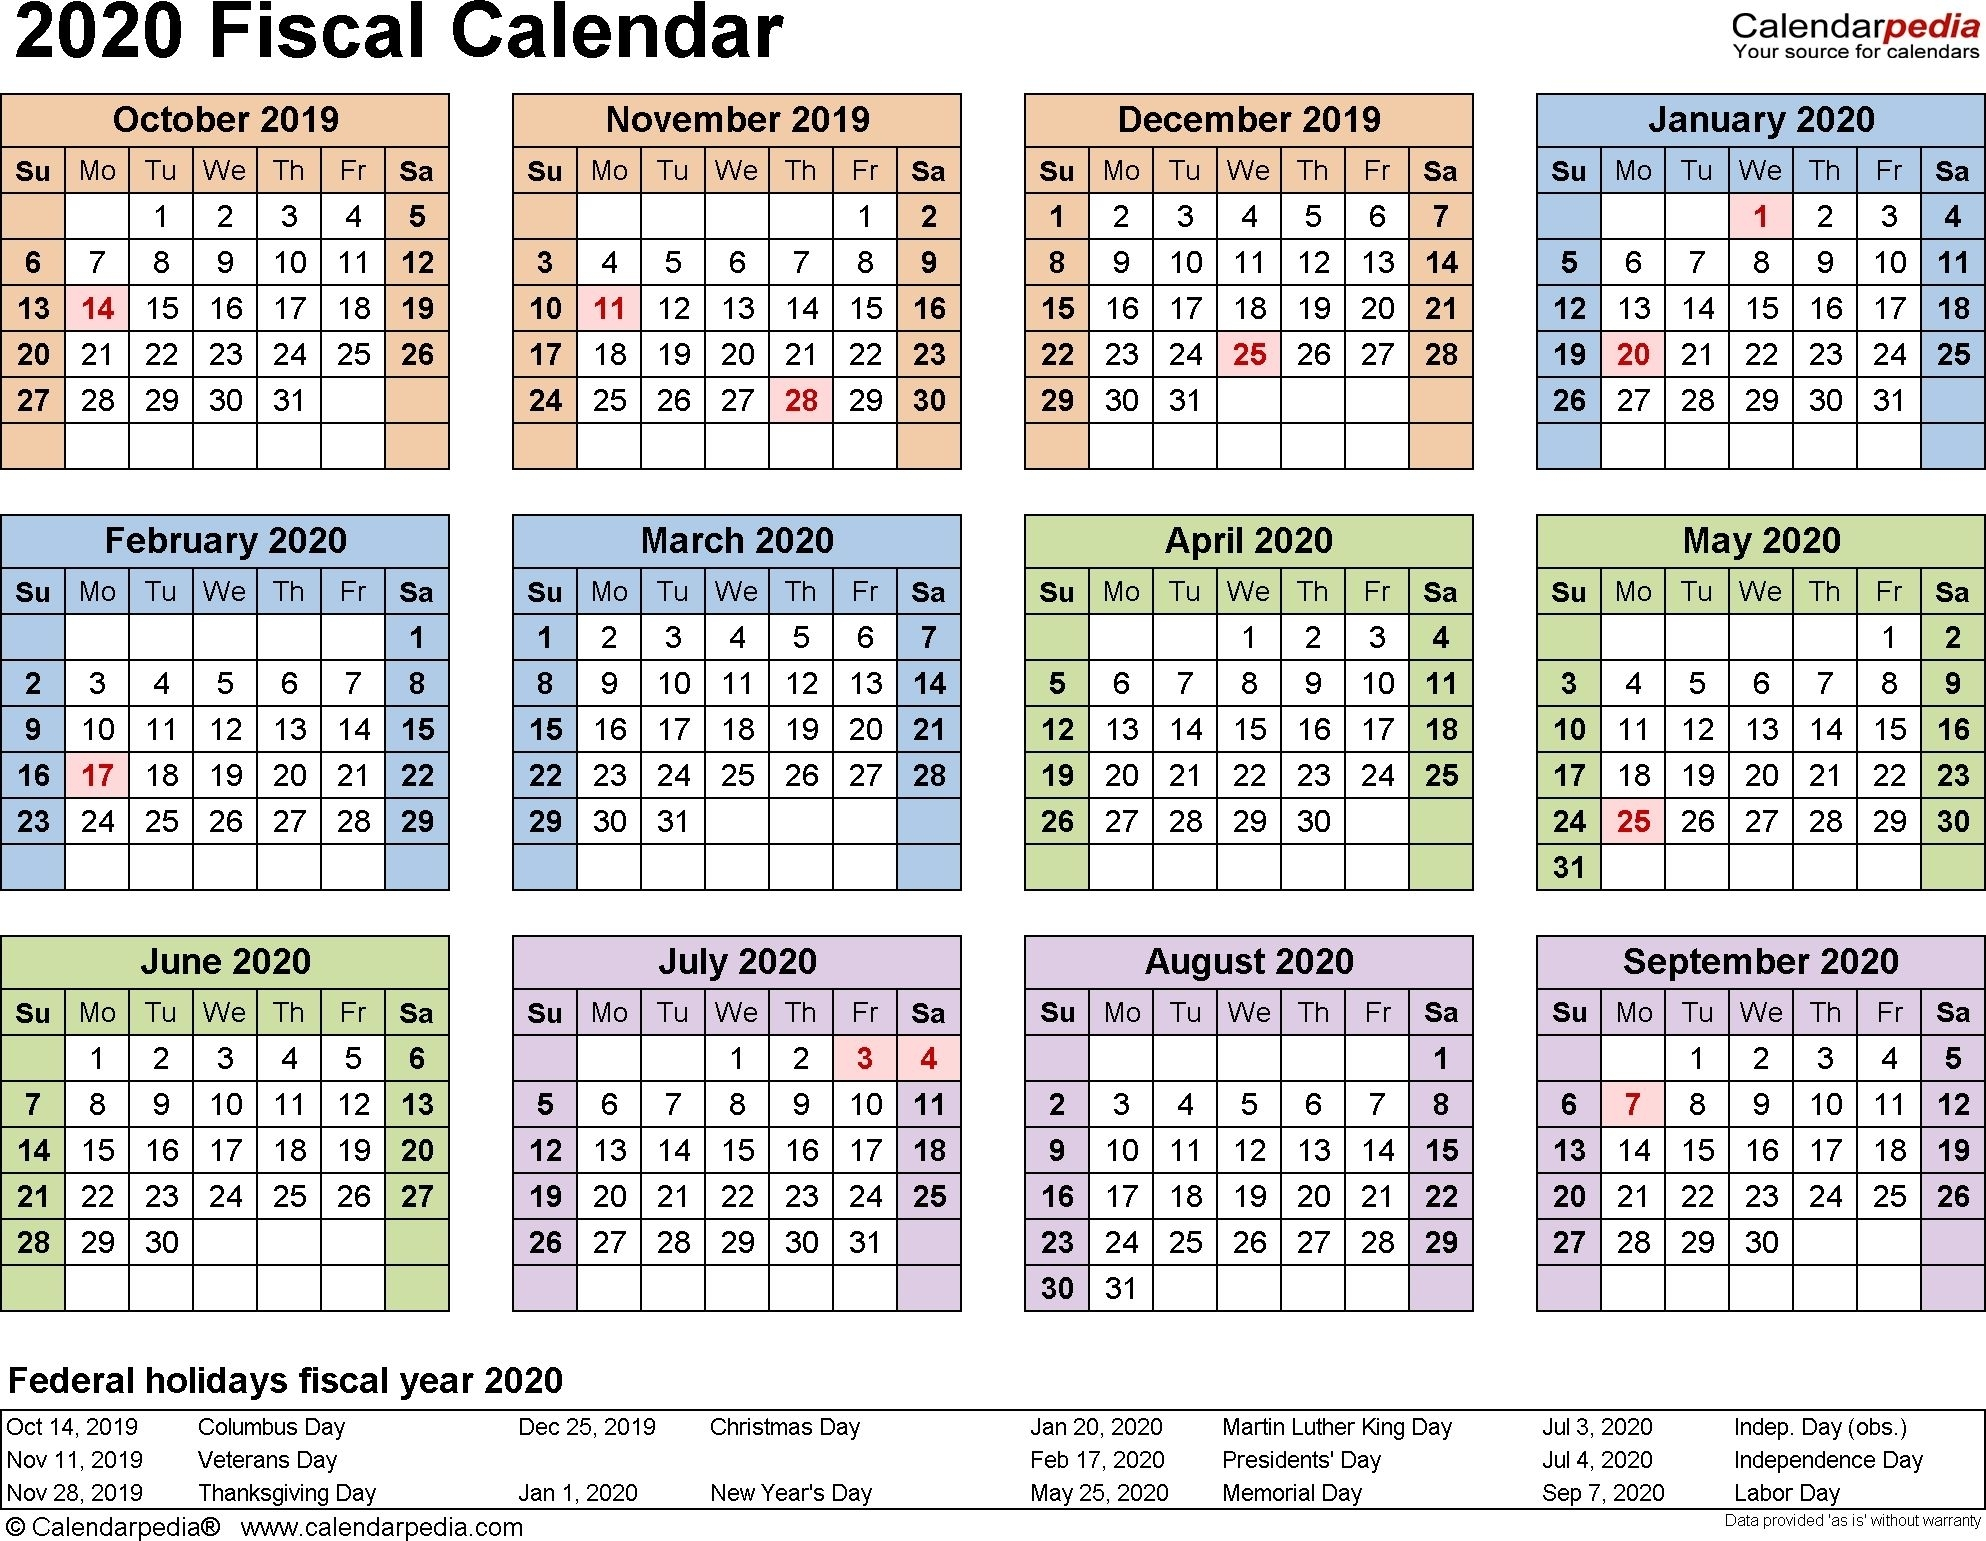 Incredible 2020 Federal Leave Calendar In 2020 | Payroll